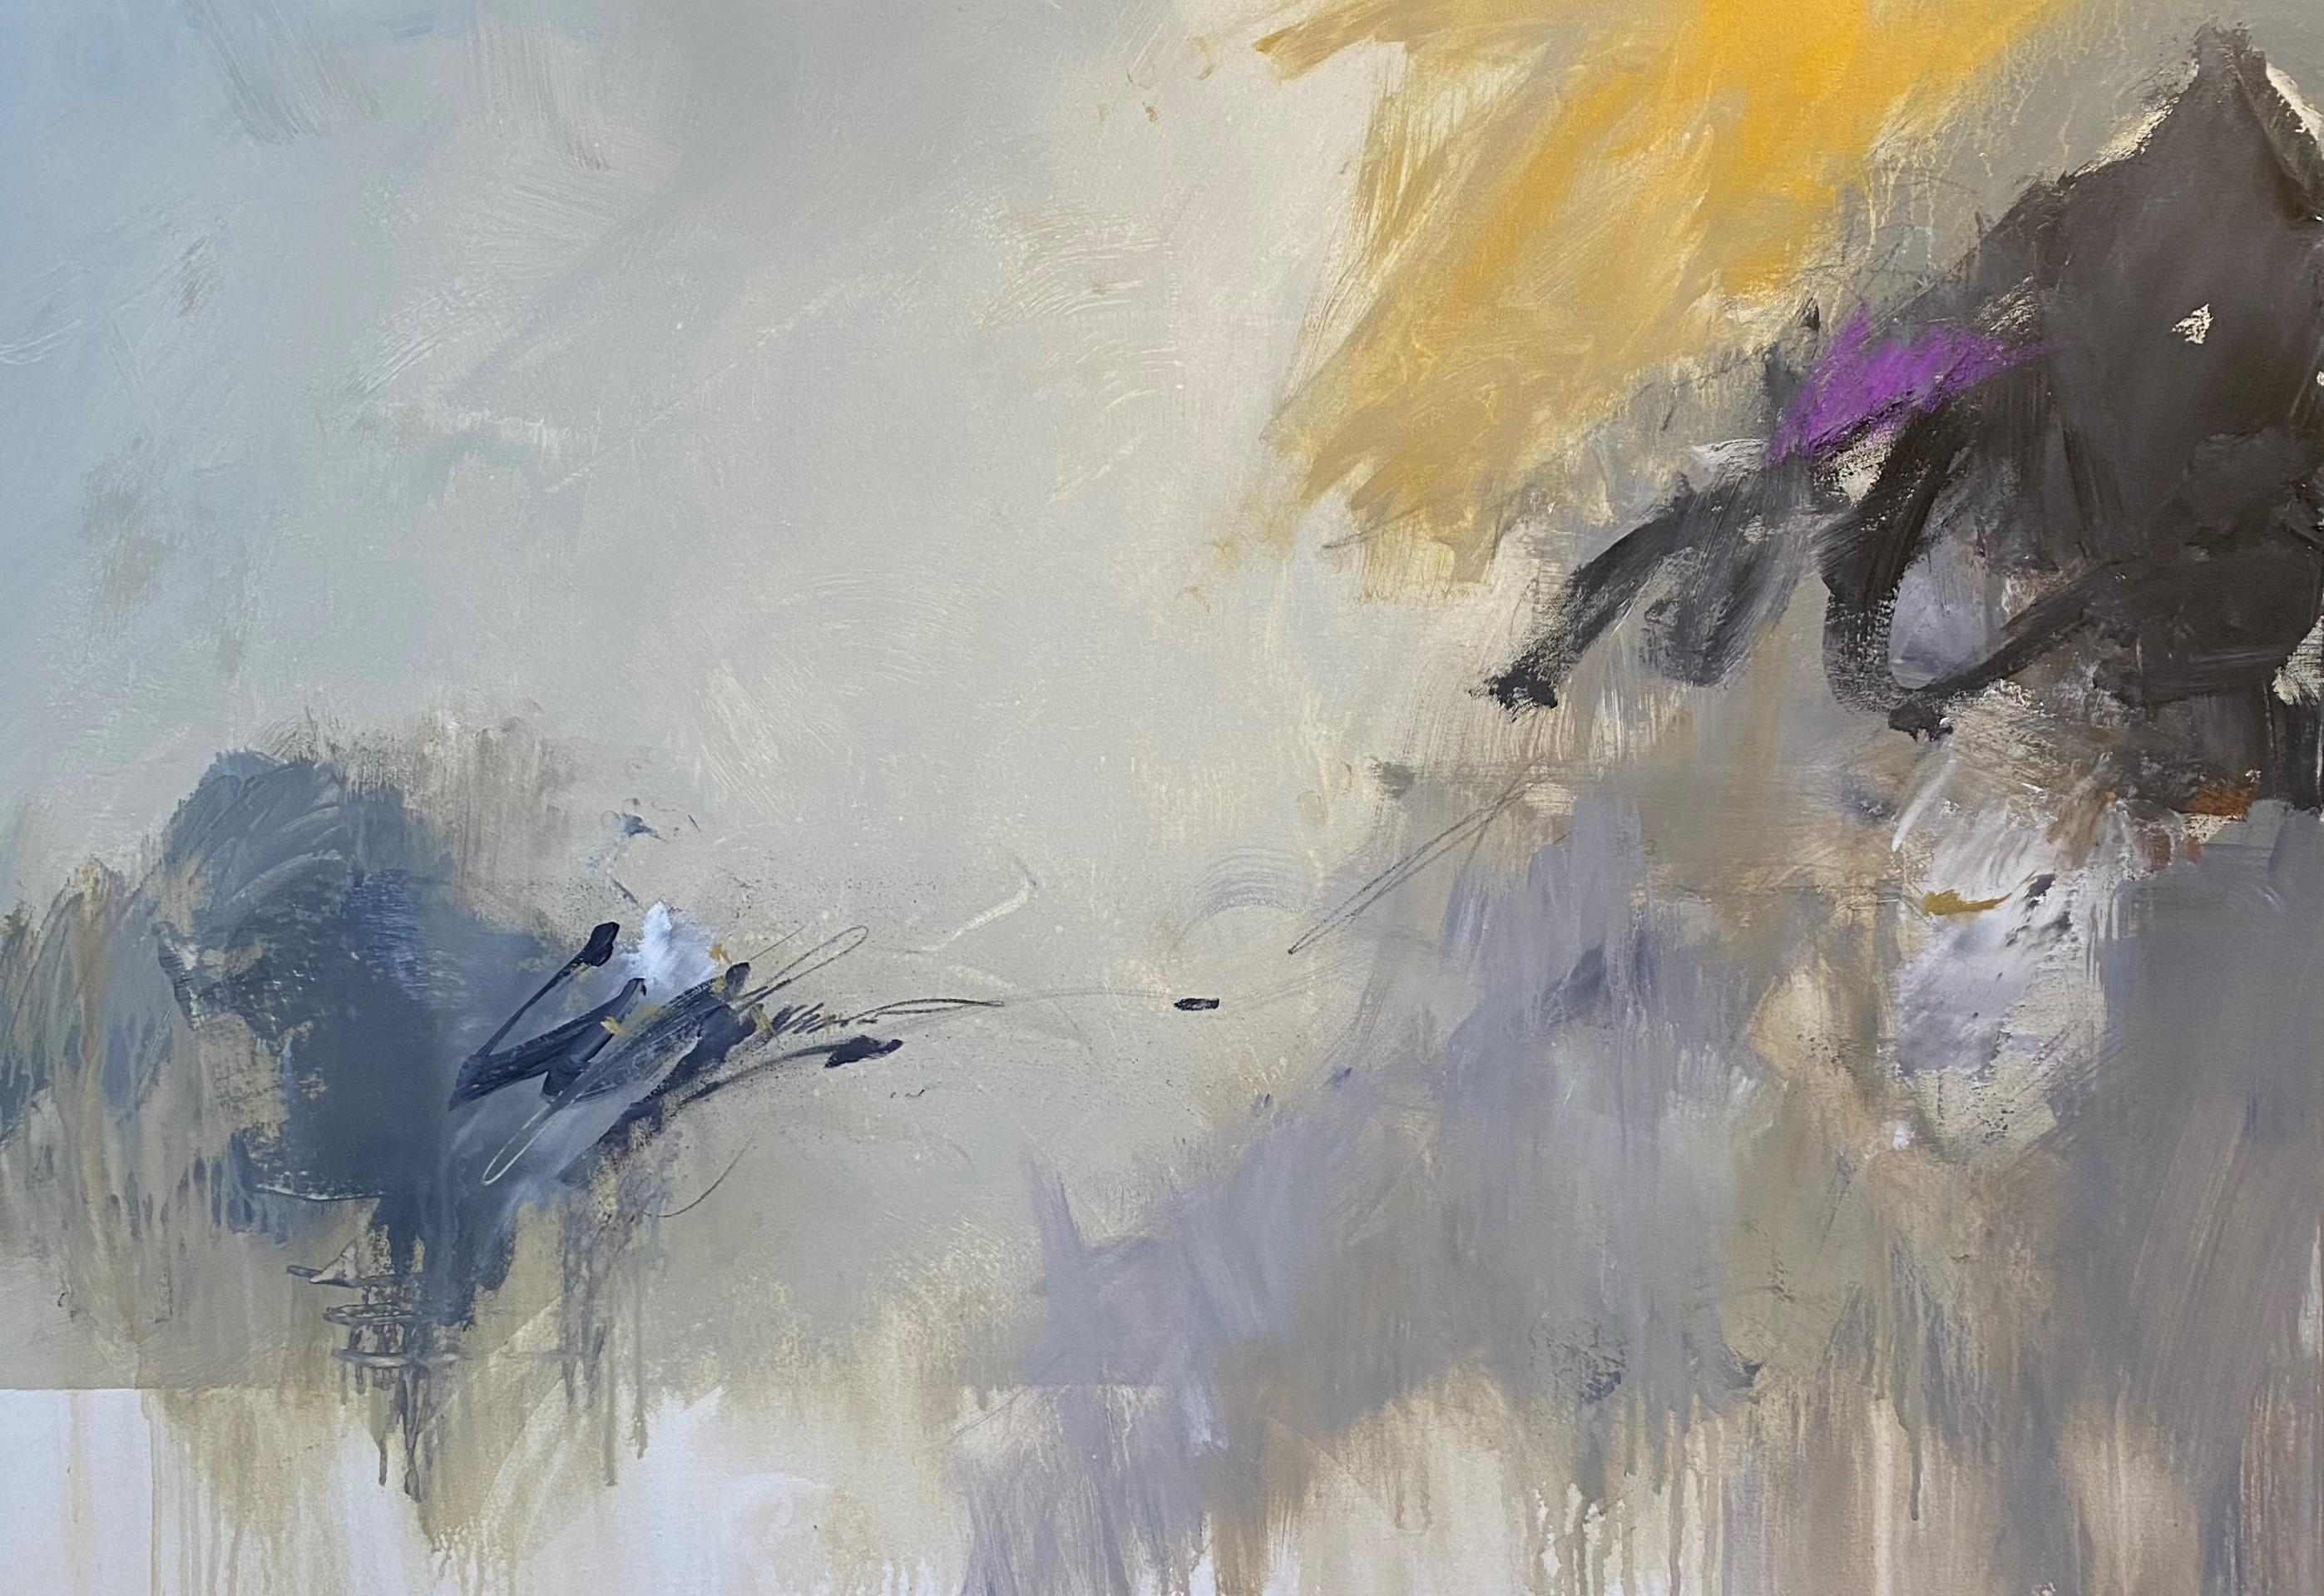 Morning by Charles Ross, Large Horizontal Mixed Media on Canvas Painting